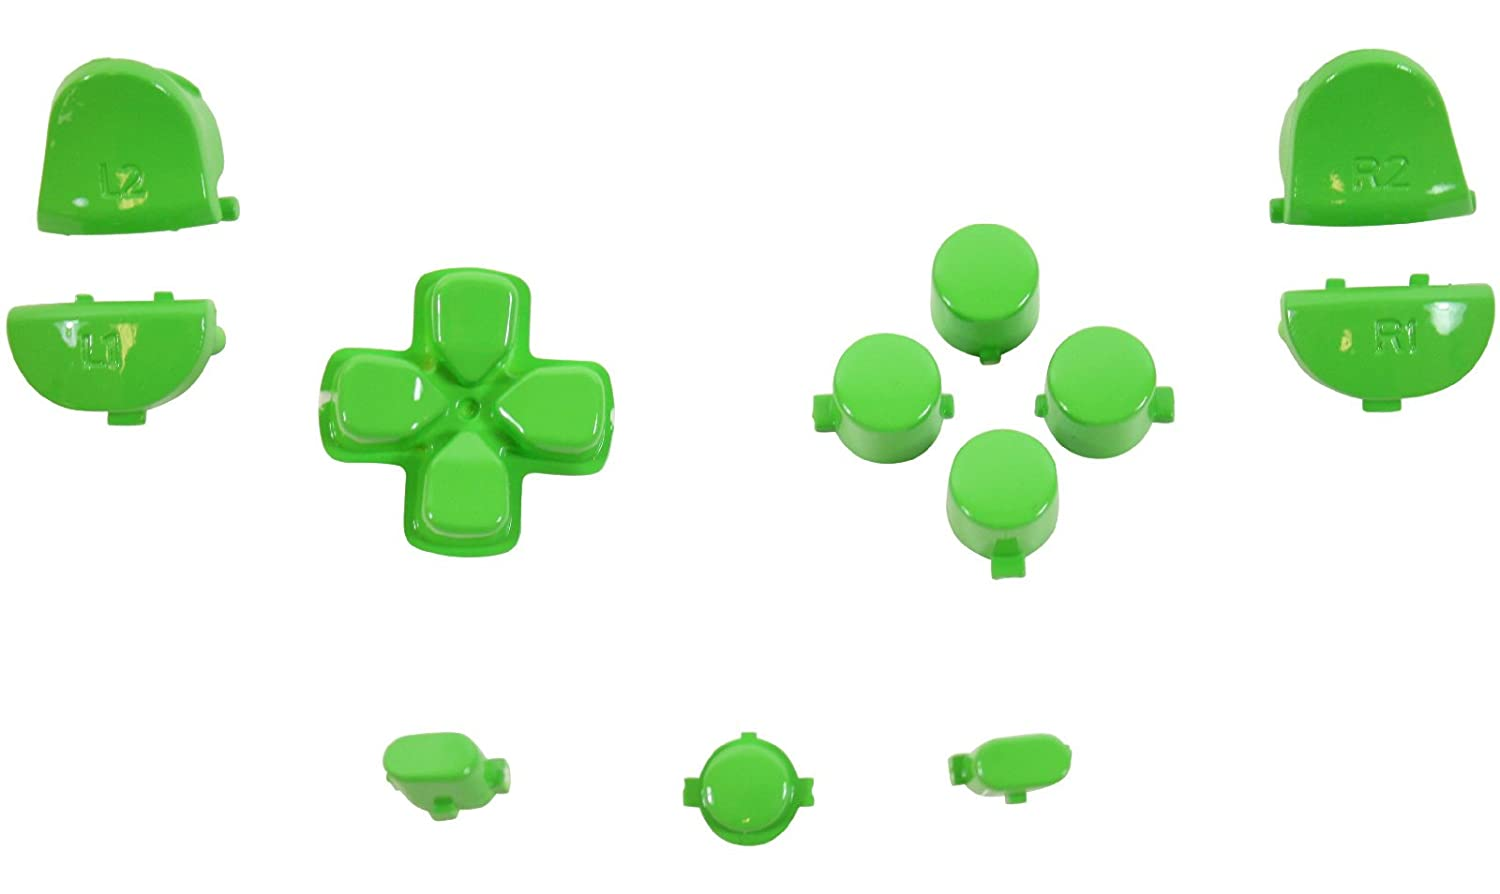 ModFreakz® Button Set Dpad Share Polished Green For PS4 Gen 1,2 V1 Controller